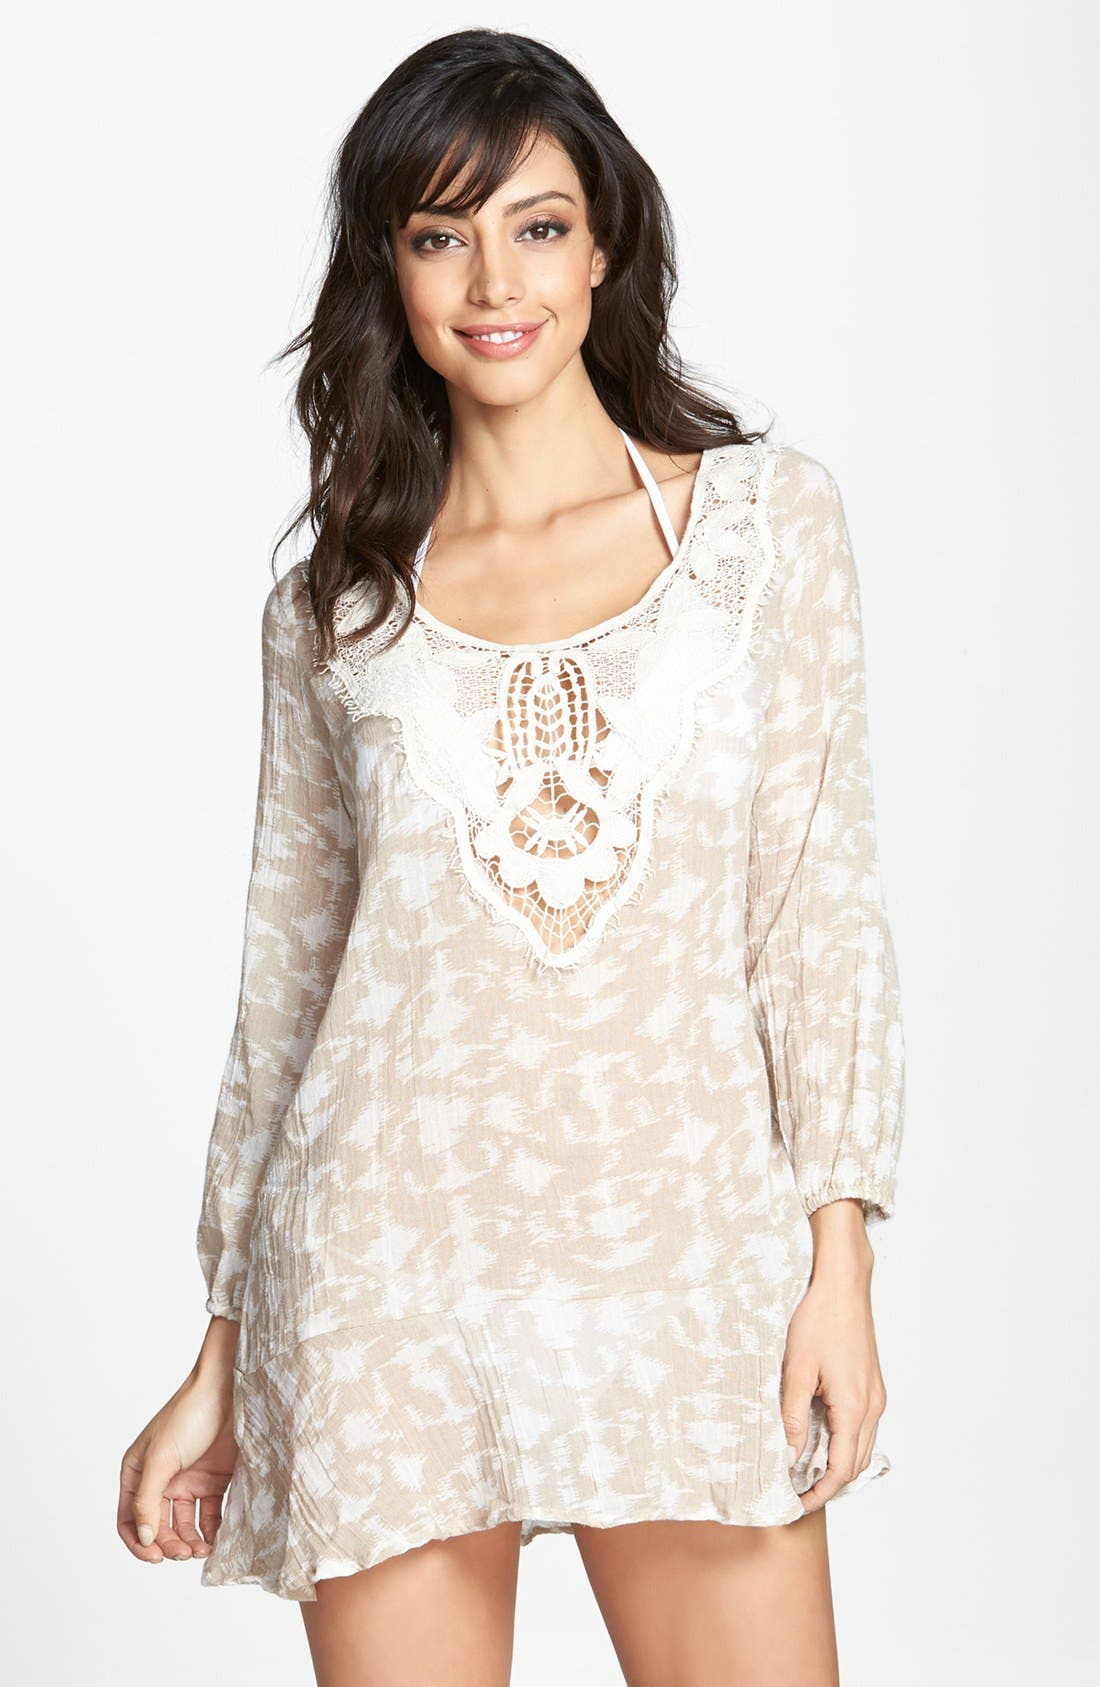 Alternate Image 1 Selected - Eberjey 'Hidden Cove Natalya' Lace Trim Ikat Cover-Up Dress